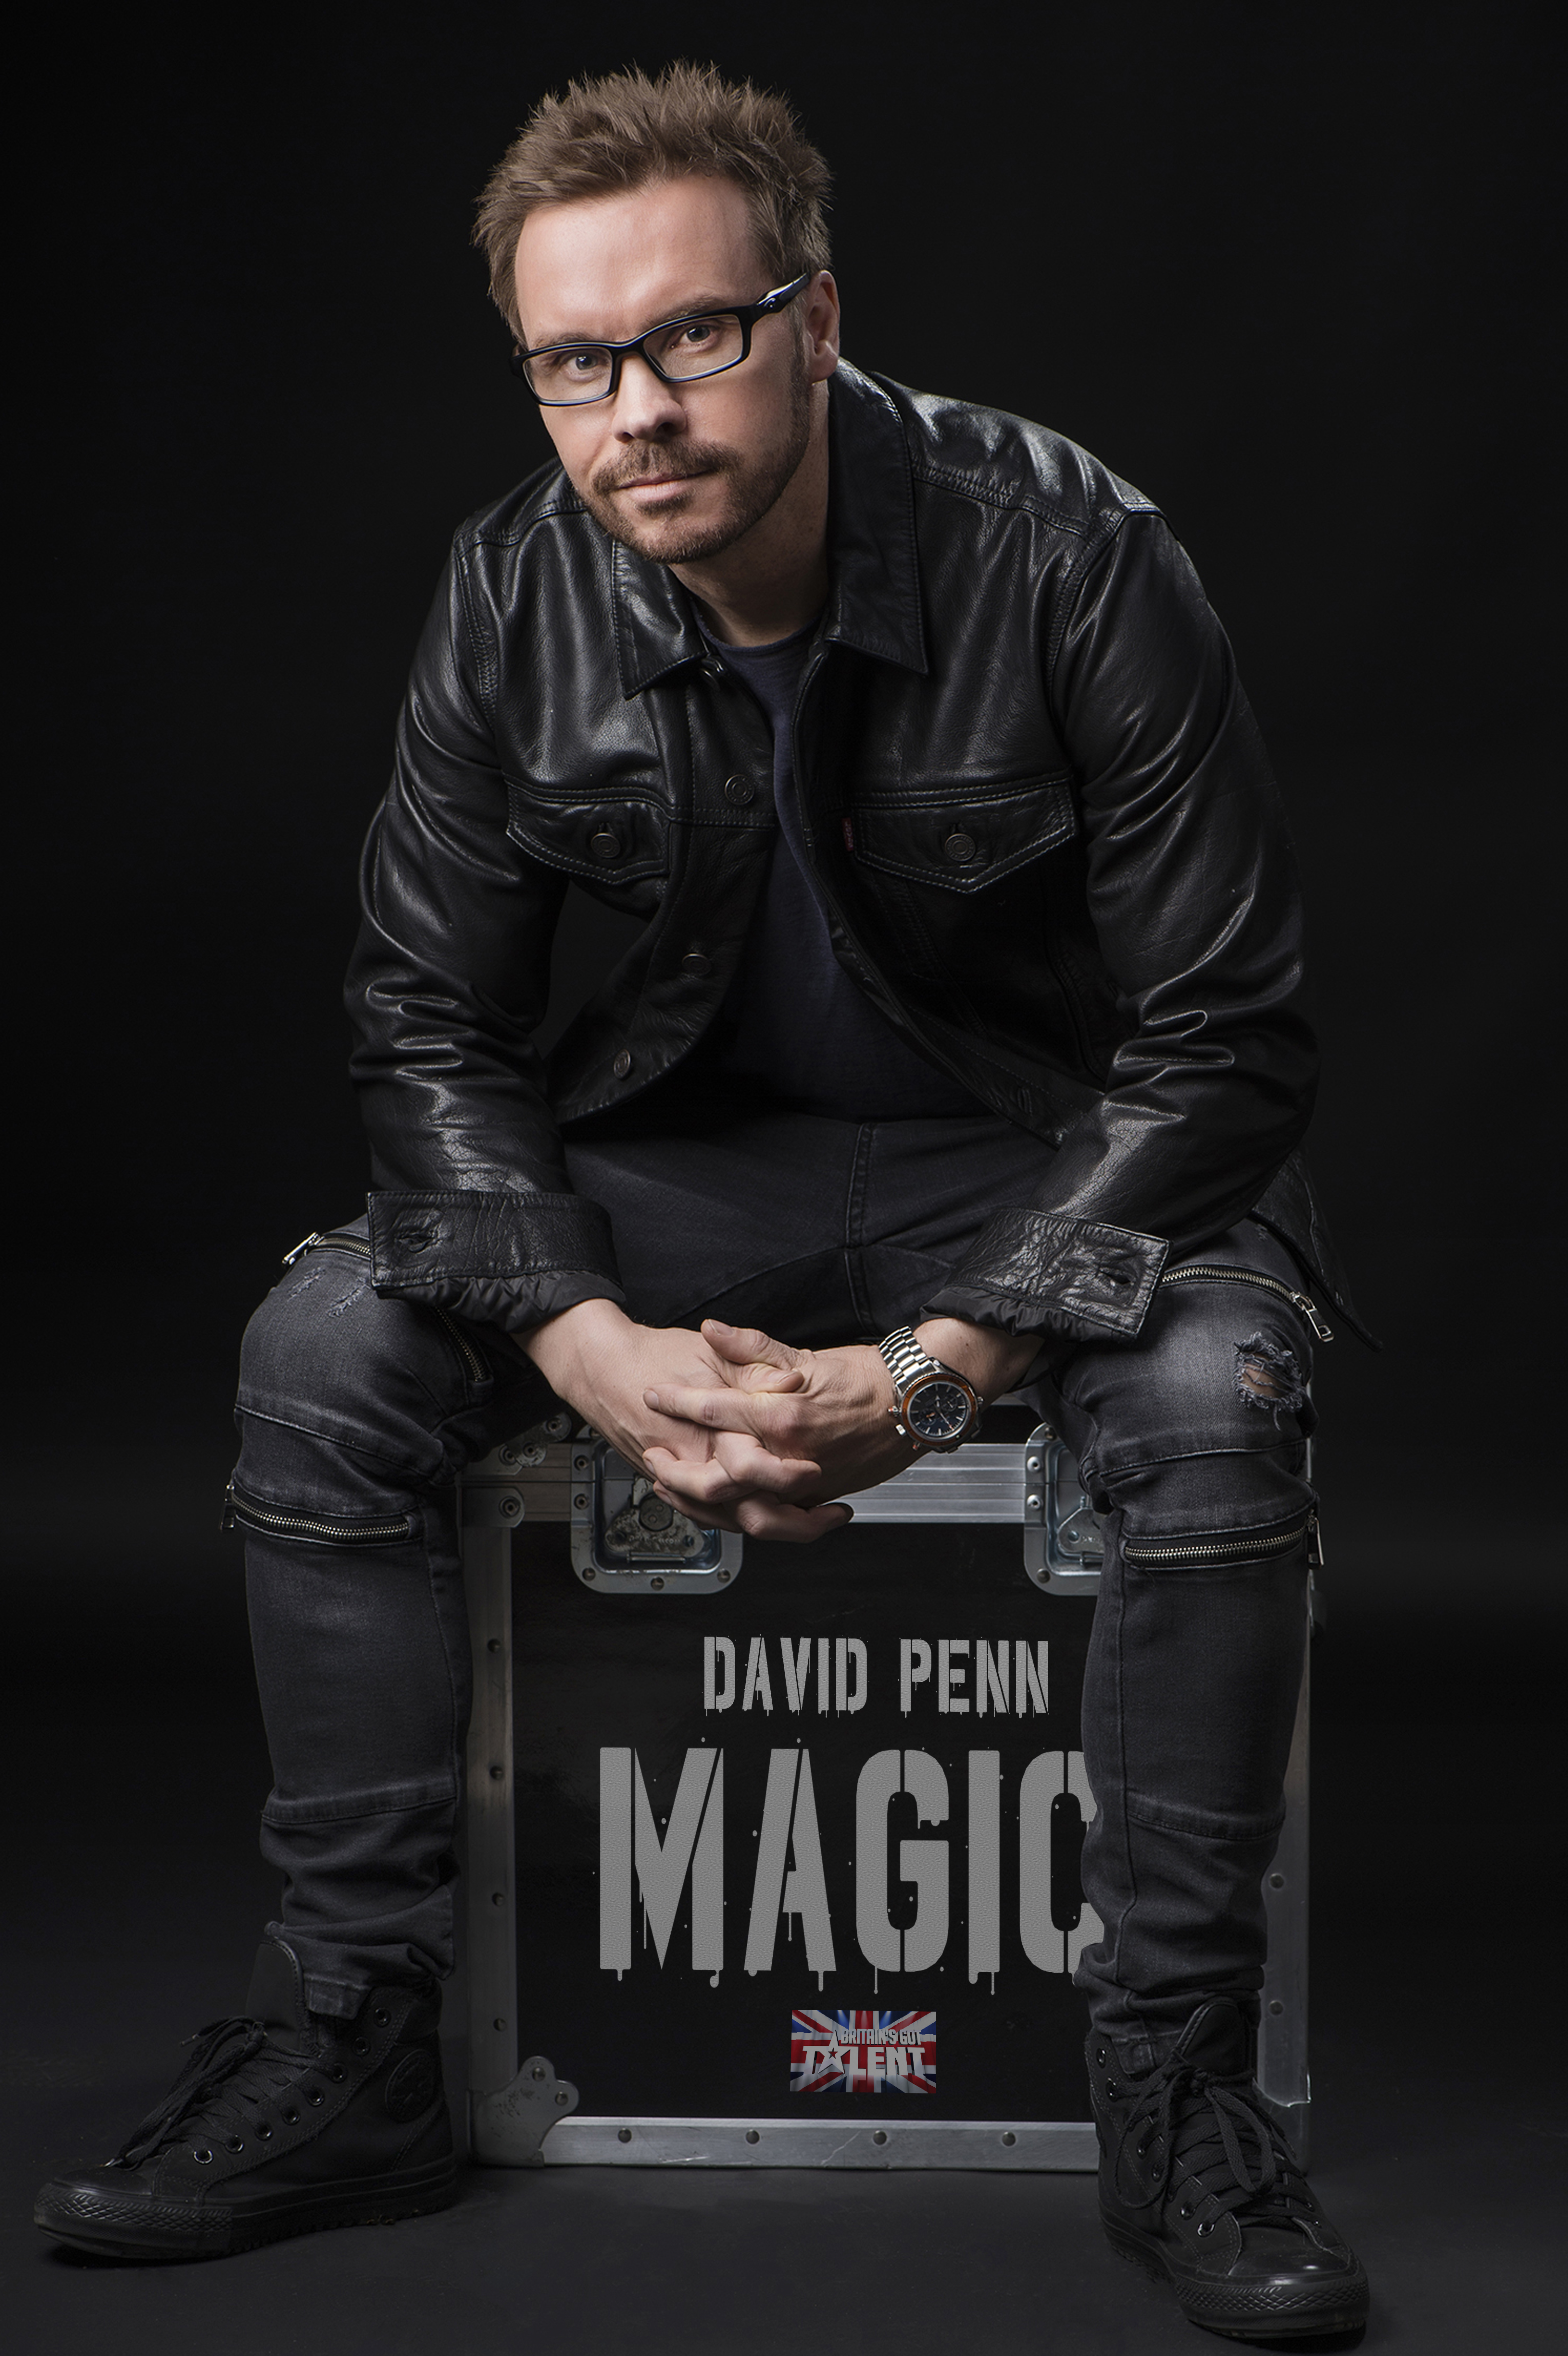 David Penn- Britains Got Talent Illusionist